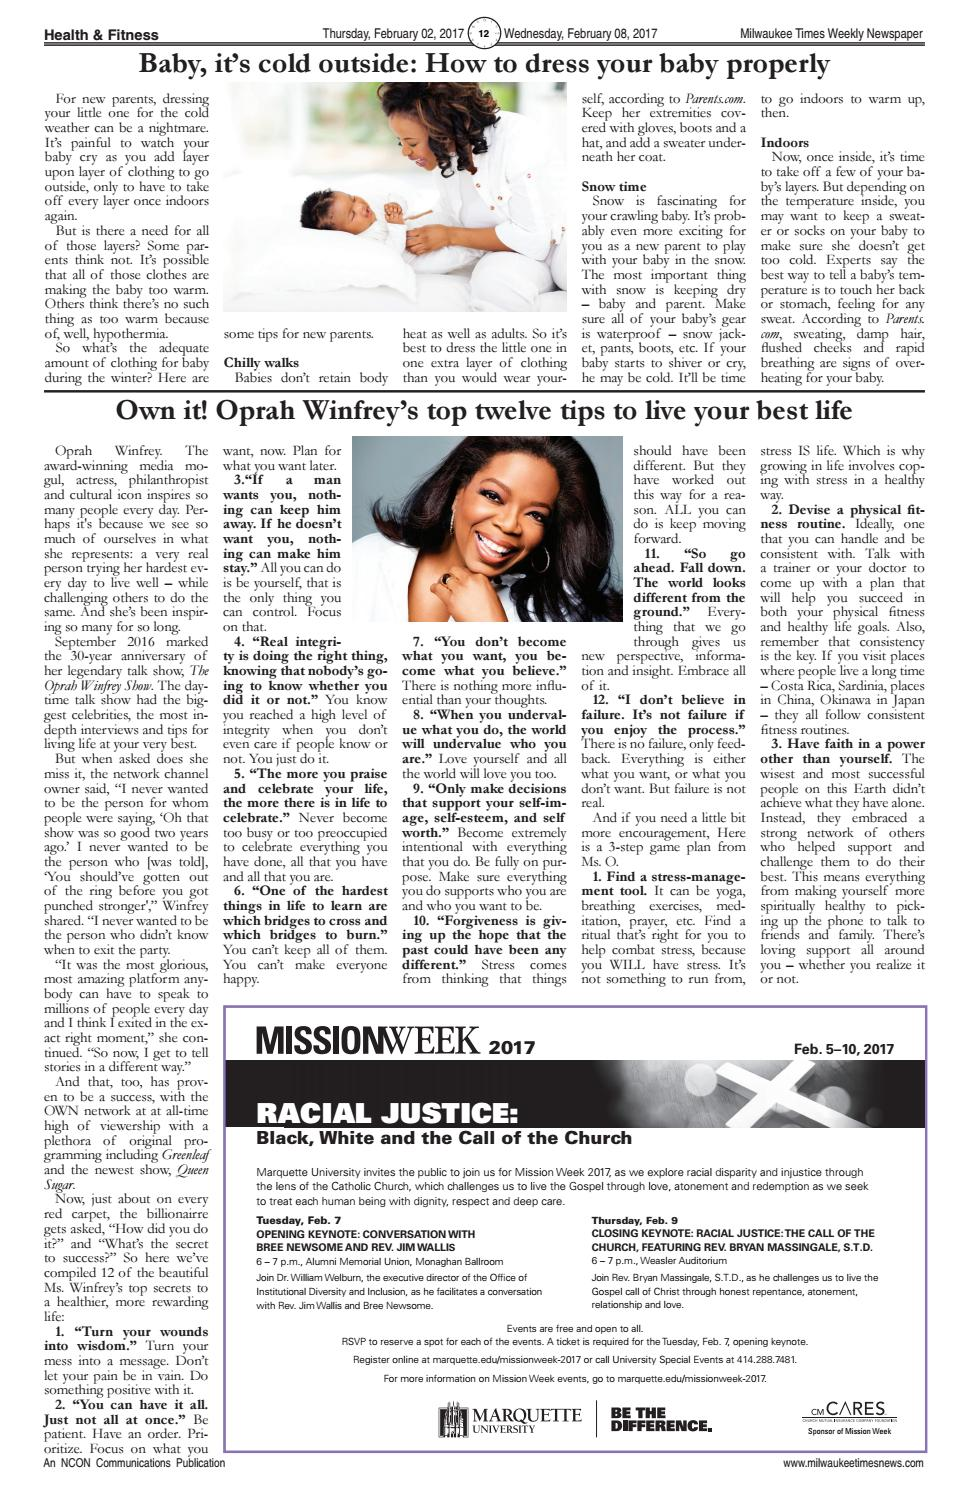 d4d9954b3 Miltimes 02 02 17 issue 16 pgs by Milwaukee Times News - issuu